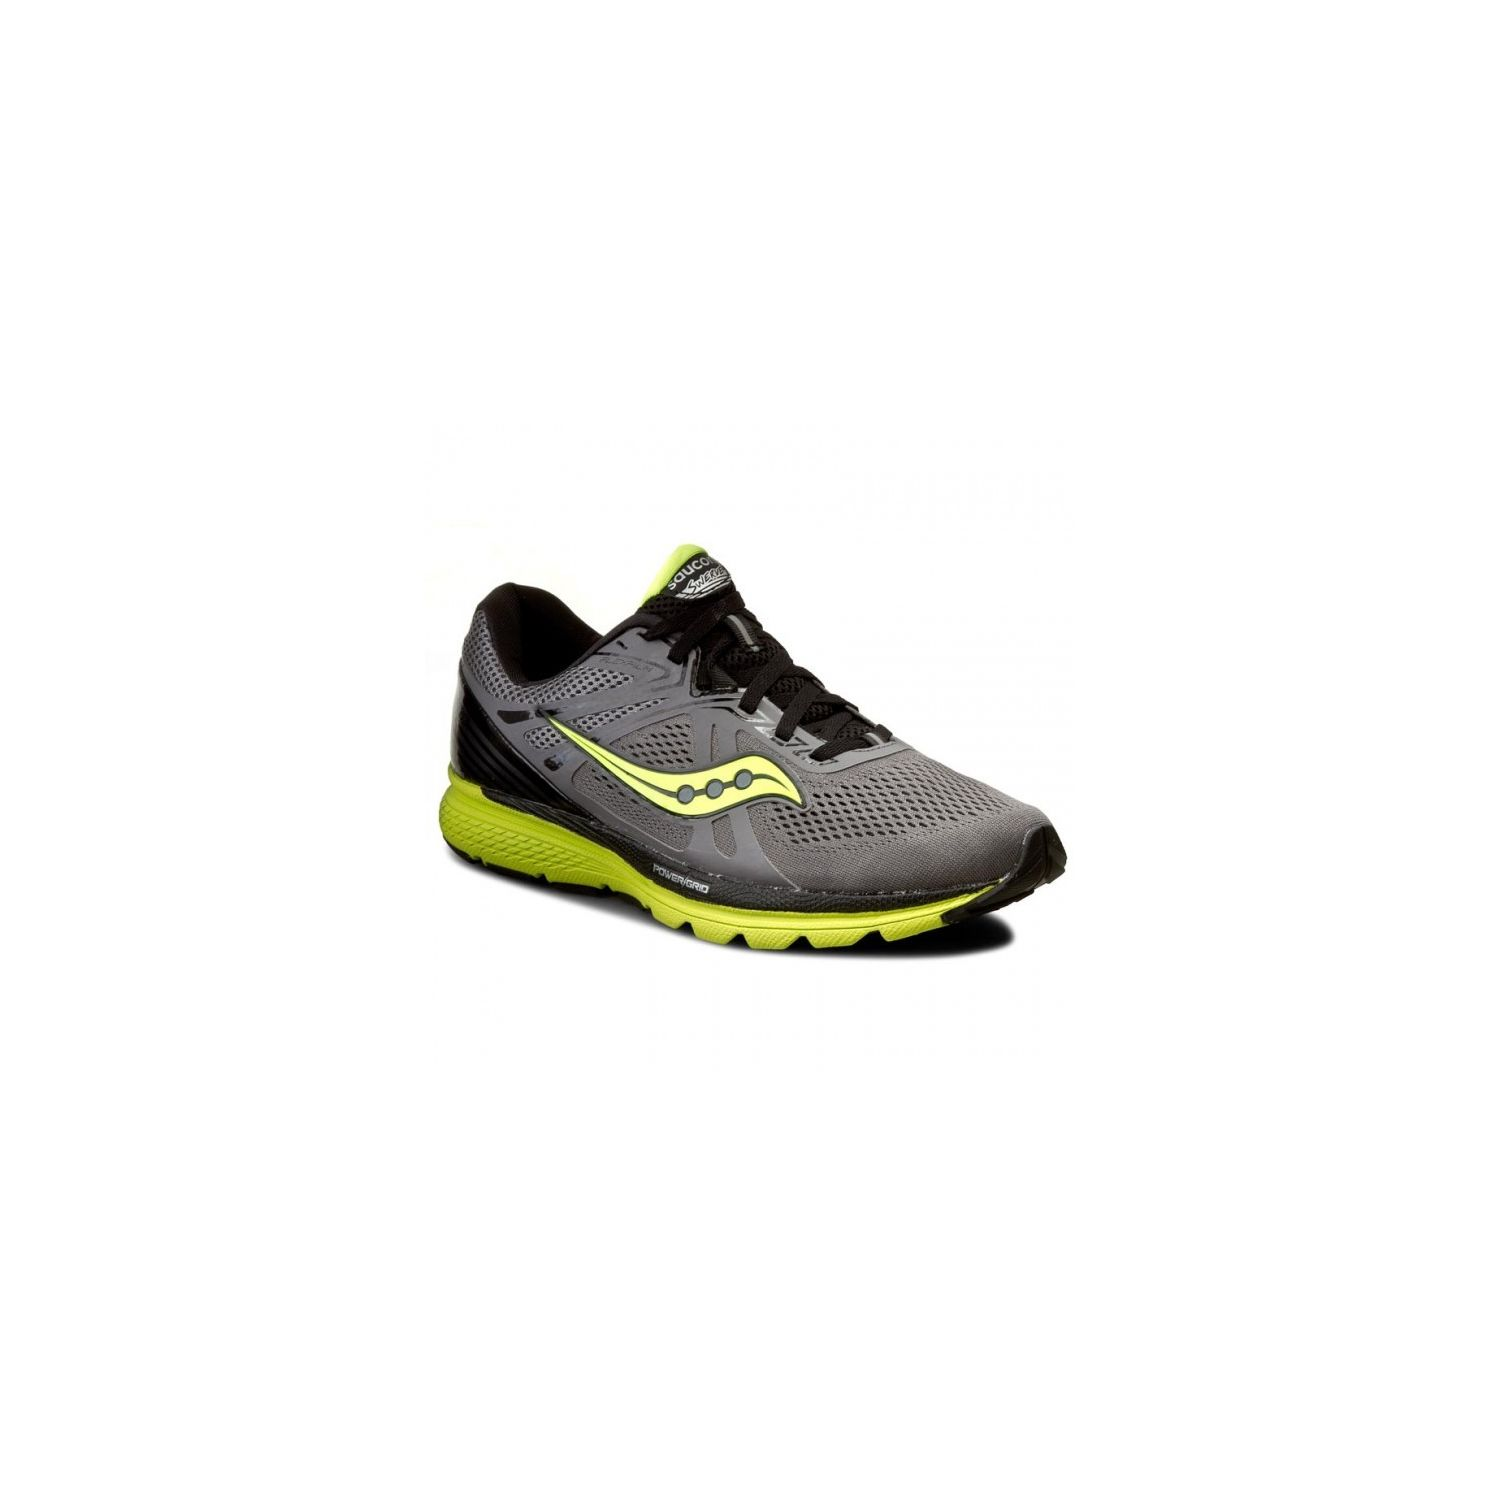 Saucony - Swerve Grise Et Jaune Chaussures running - pas cher Achat / Vente Chaussures running